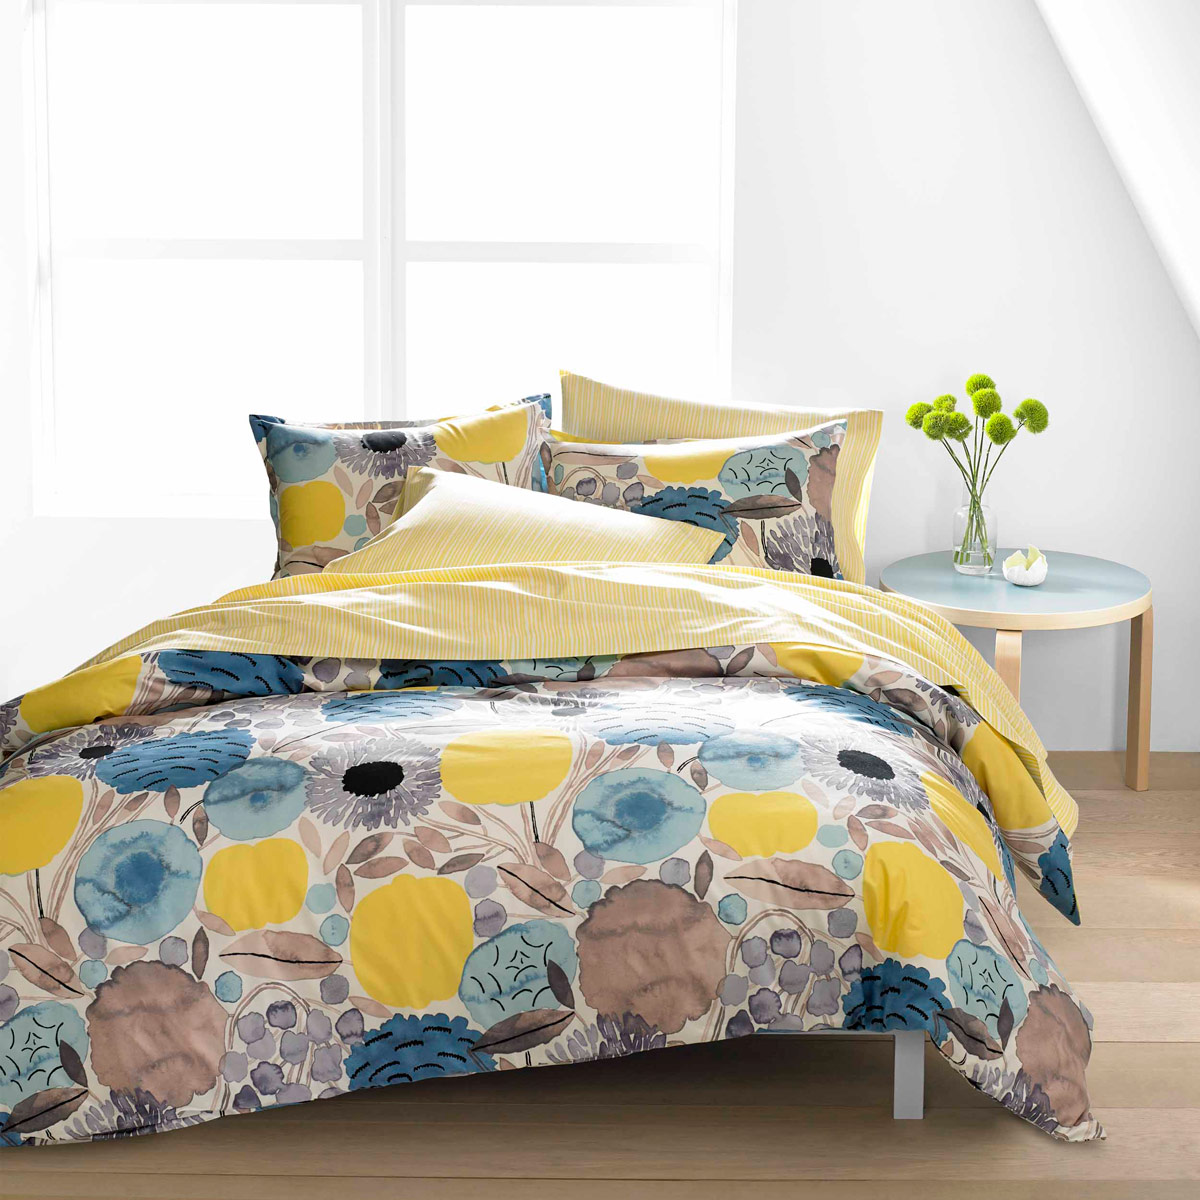 cover covers bedding en duvet mattresses marimekko sheets square couette unelma bedlinen